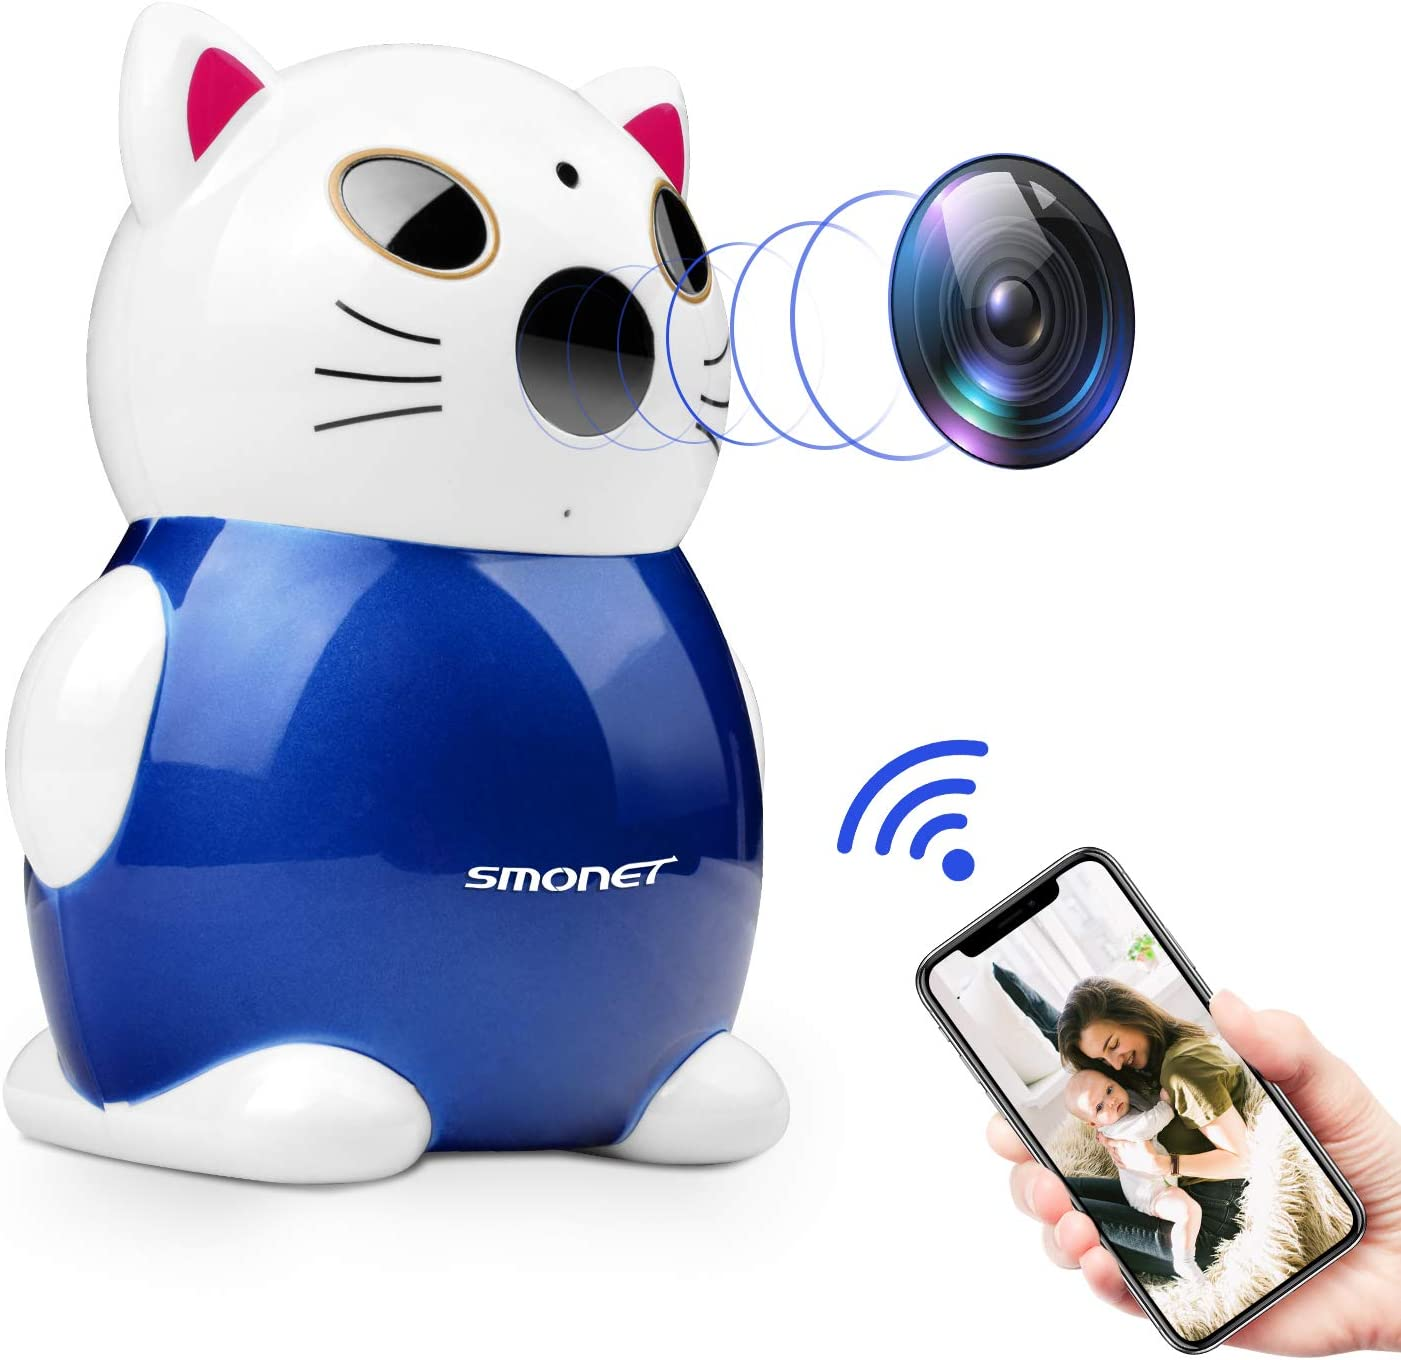 SMONET Wireless Home Security Camera, Security Camera Wireless HD,as Wireless Baby Camera Motion Detector with Audio,Wireless Pet Camera for iPhone, Night Vision, Video Record